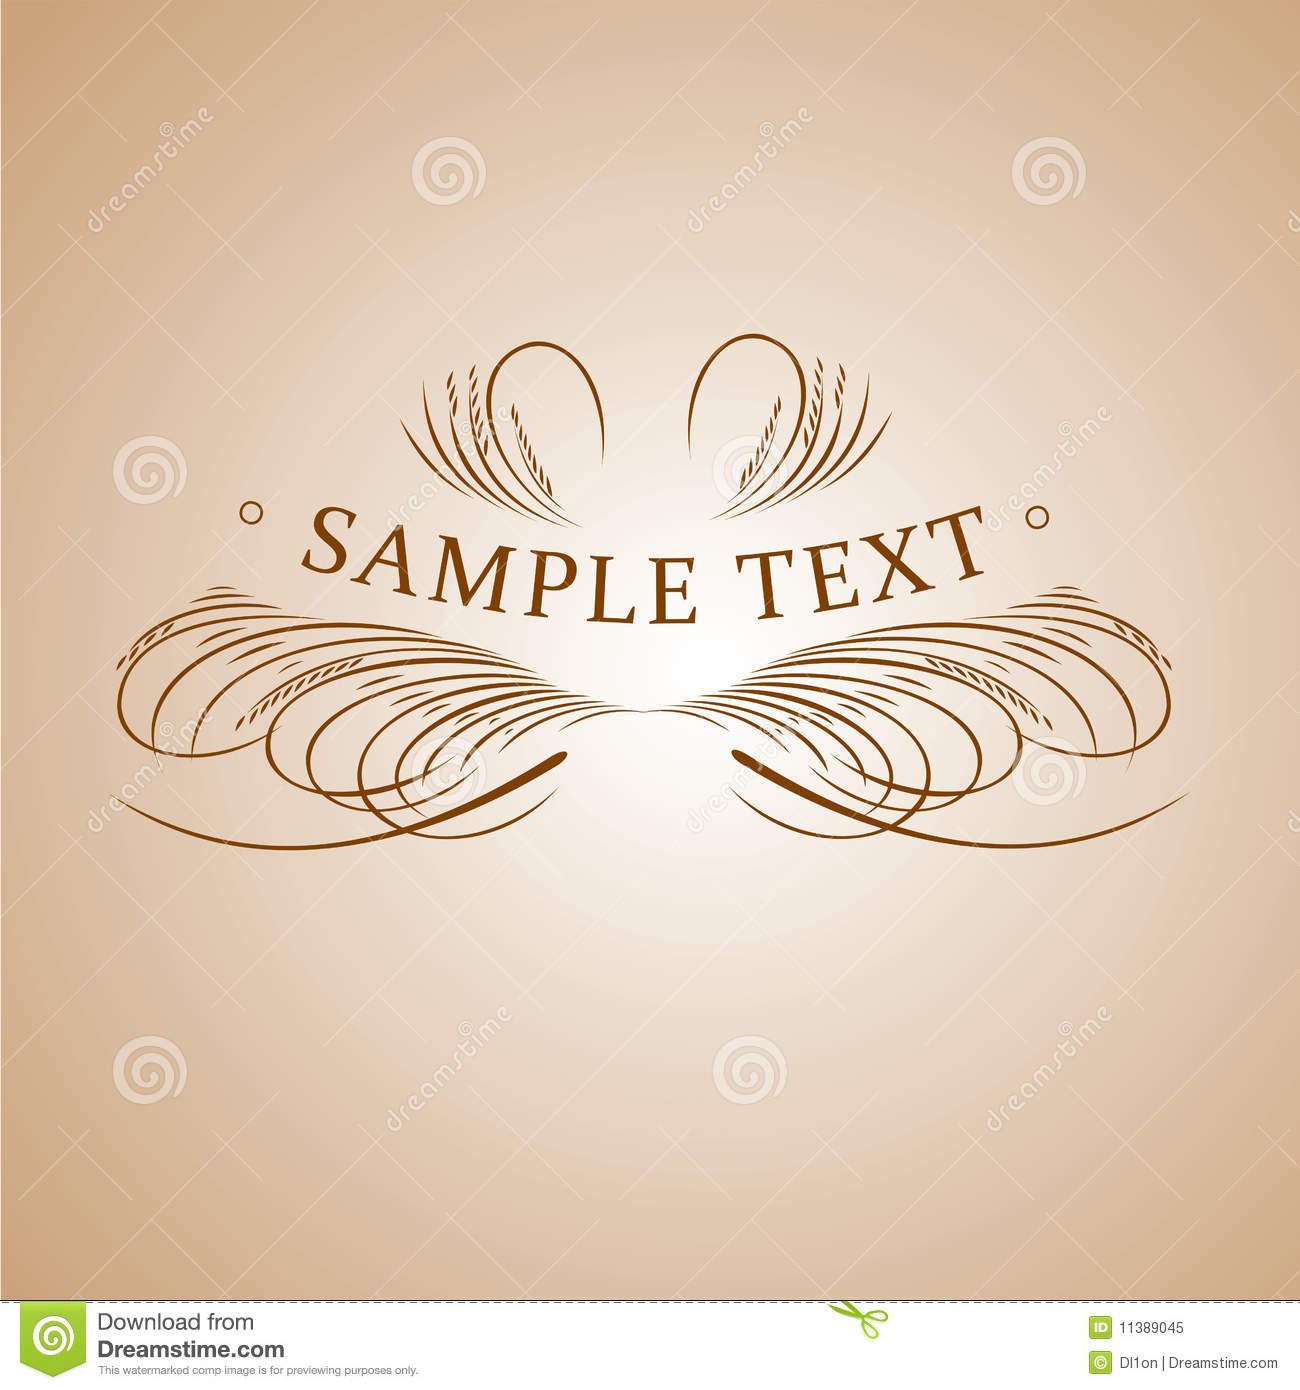 Calligraphy text banner royalty free stock photo image